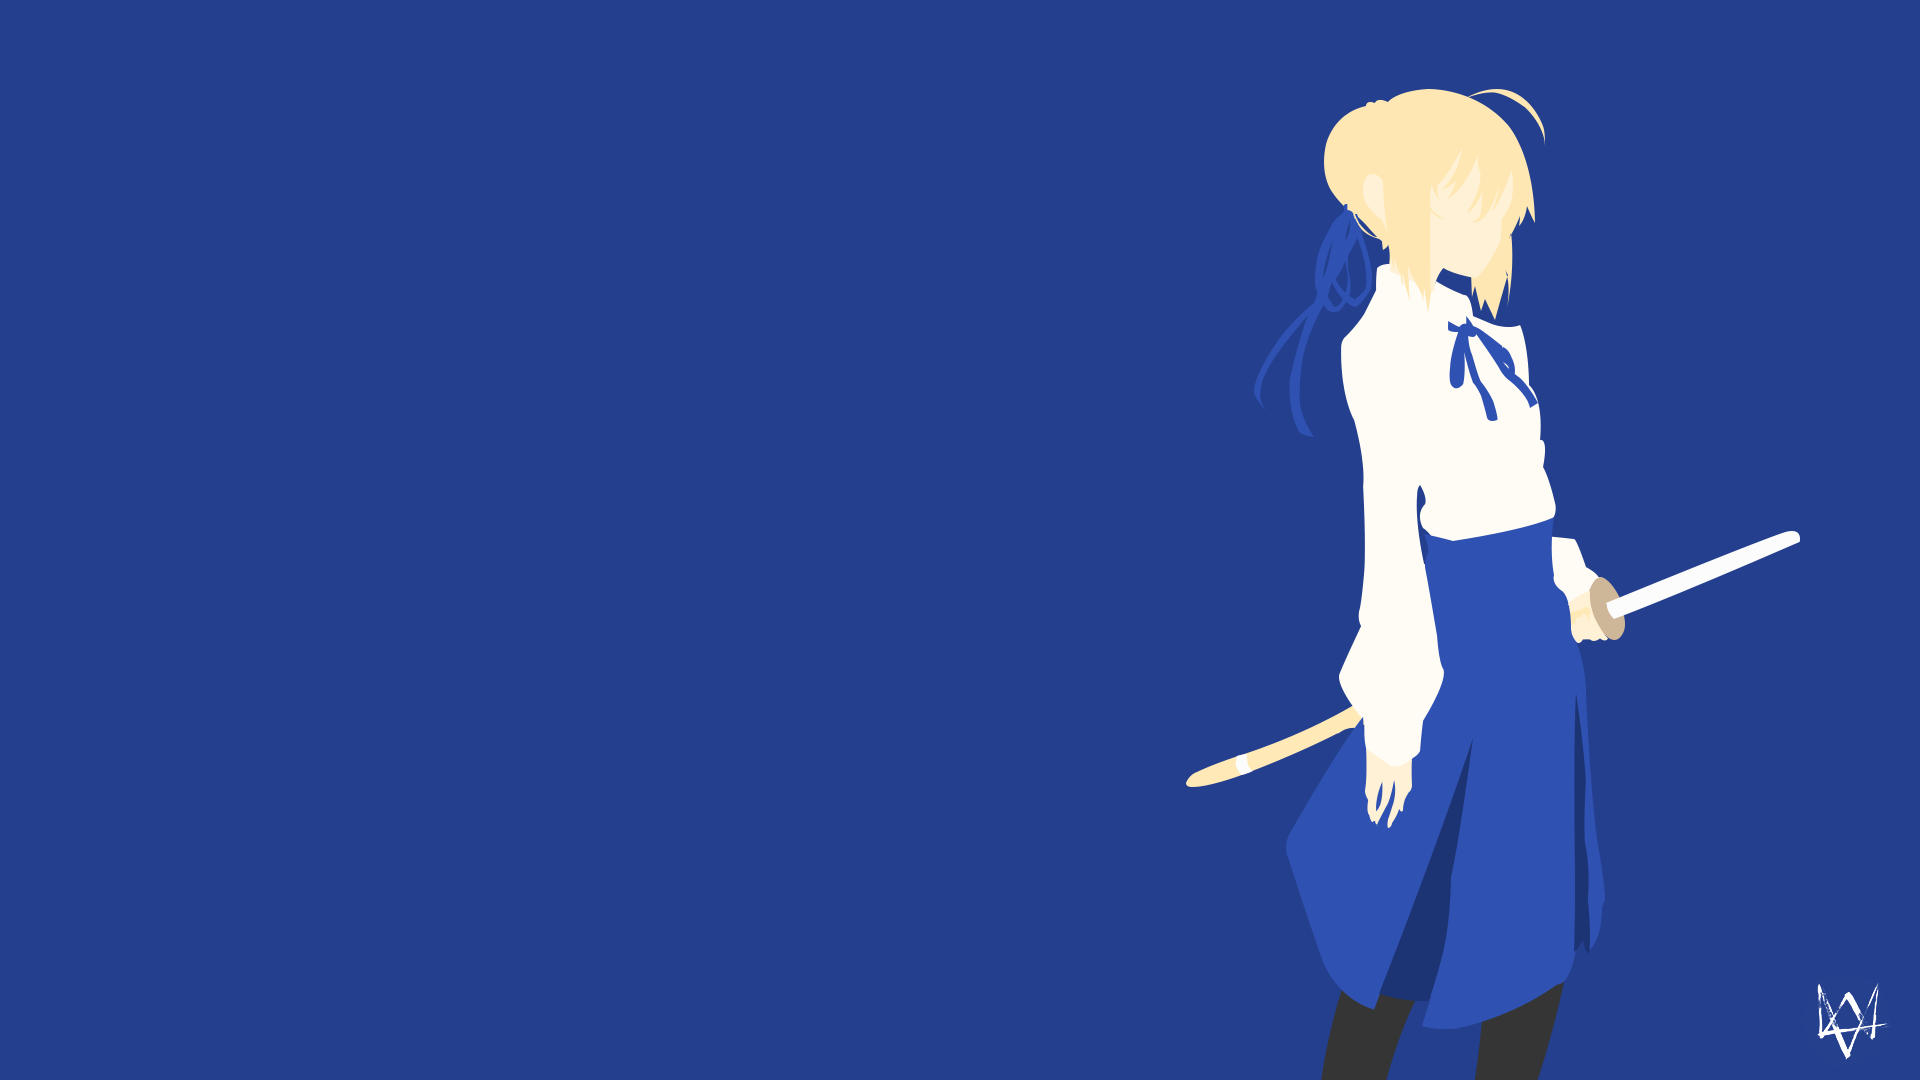 Saber | Fate/Stay Night Minimalist Anime by Lucifer012 on ...